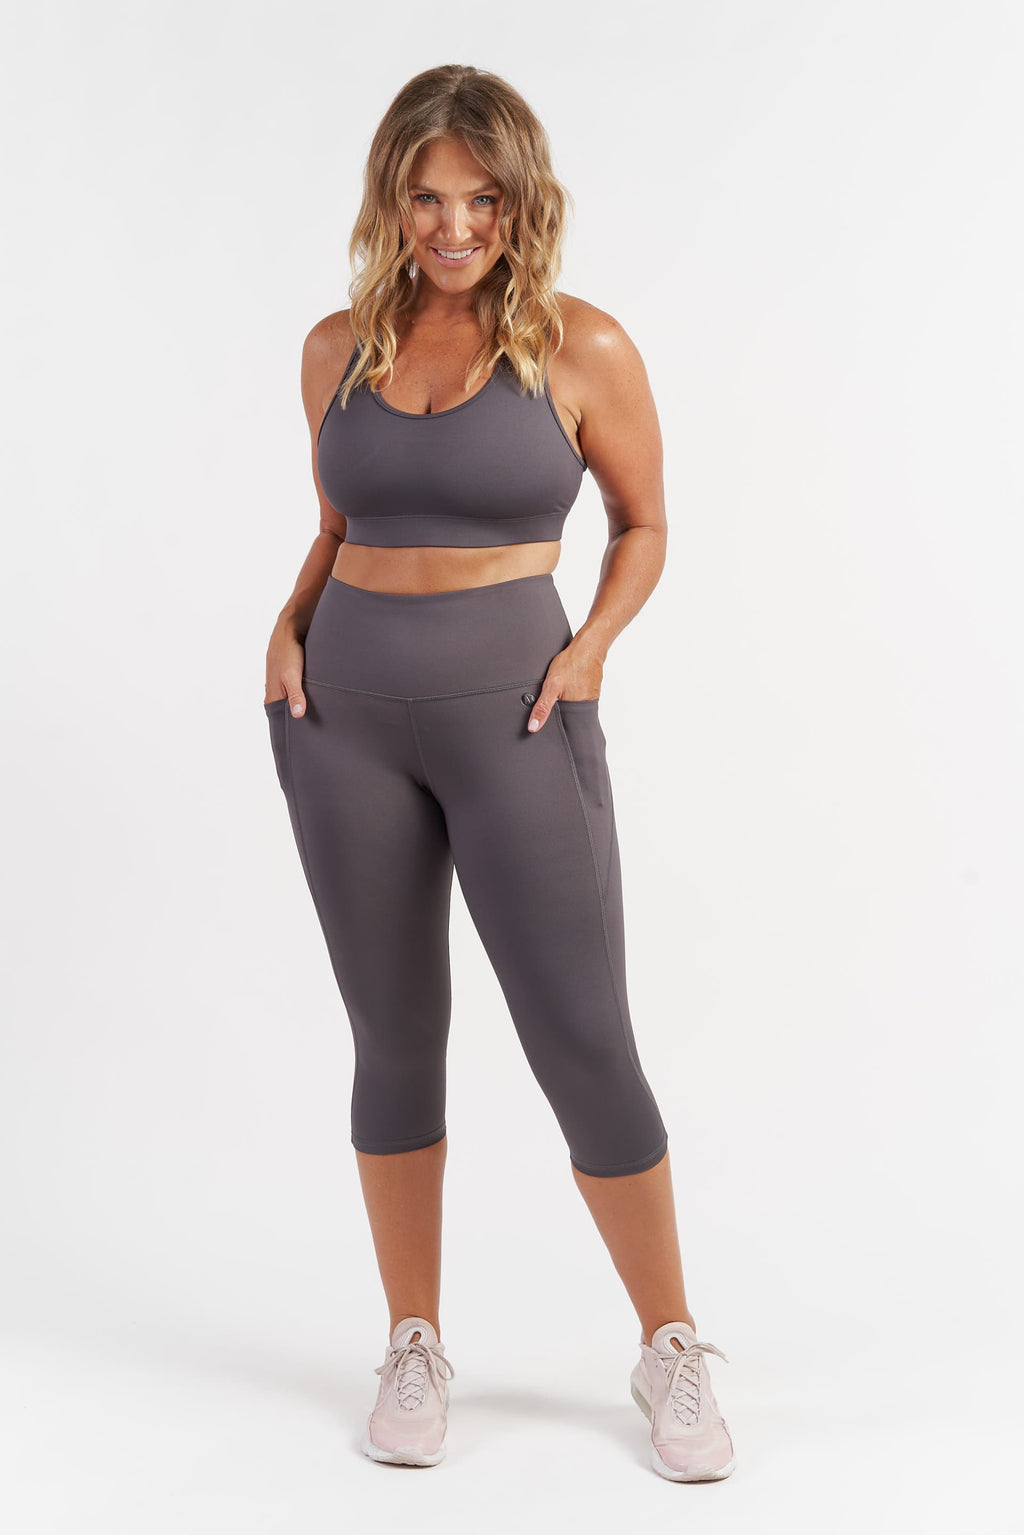 croppedlength-gym-tights-grey-large-front